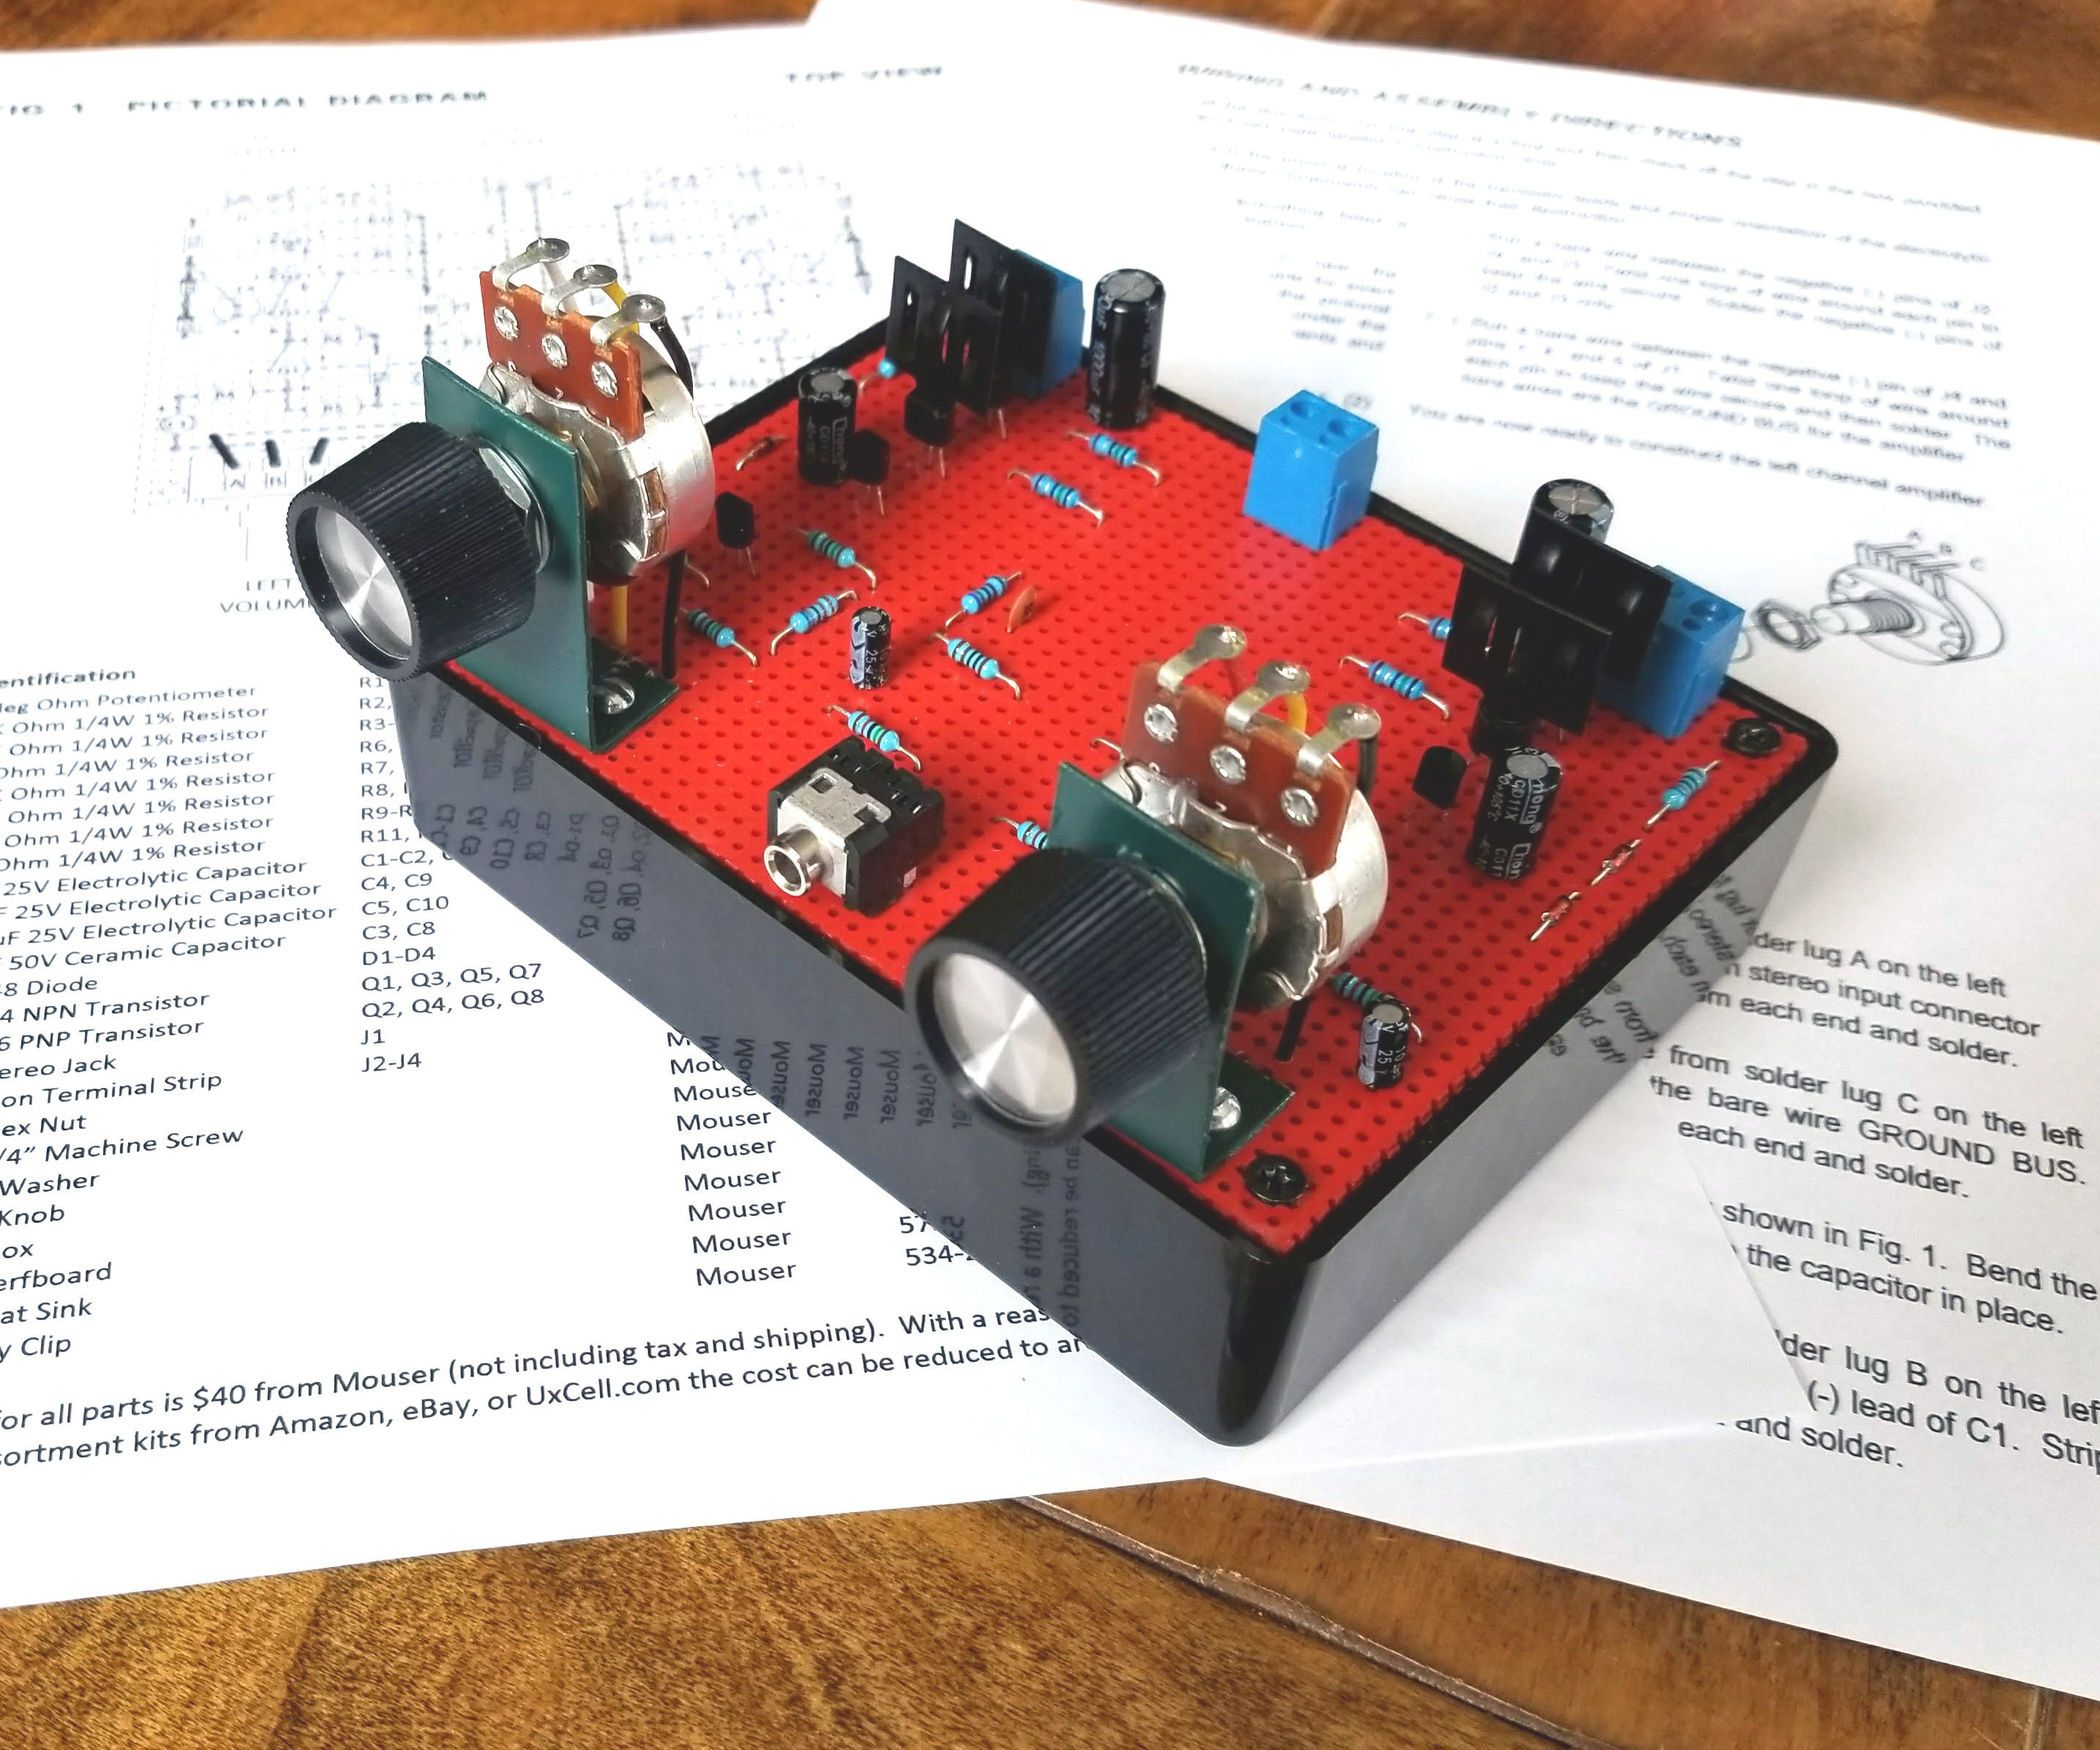 8 Transistor Stereo Amplifier | Stereo amplifier, Electronics ...